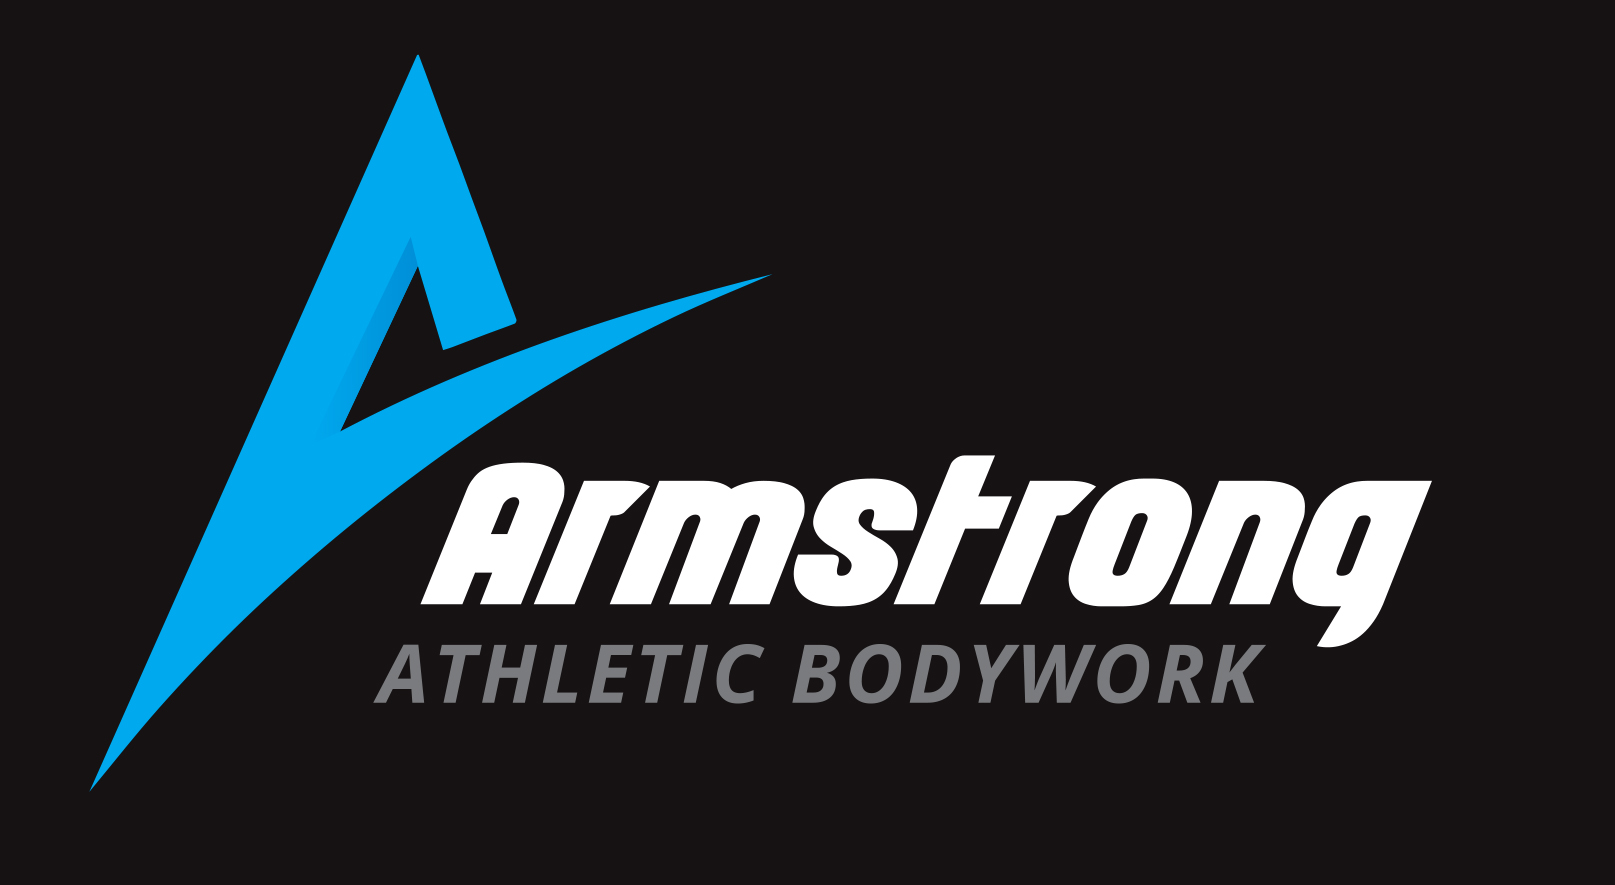 armstrong_athletic_bodywork_black (002).